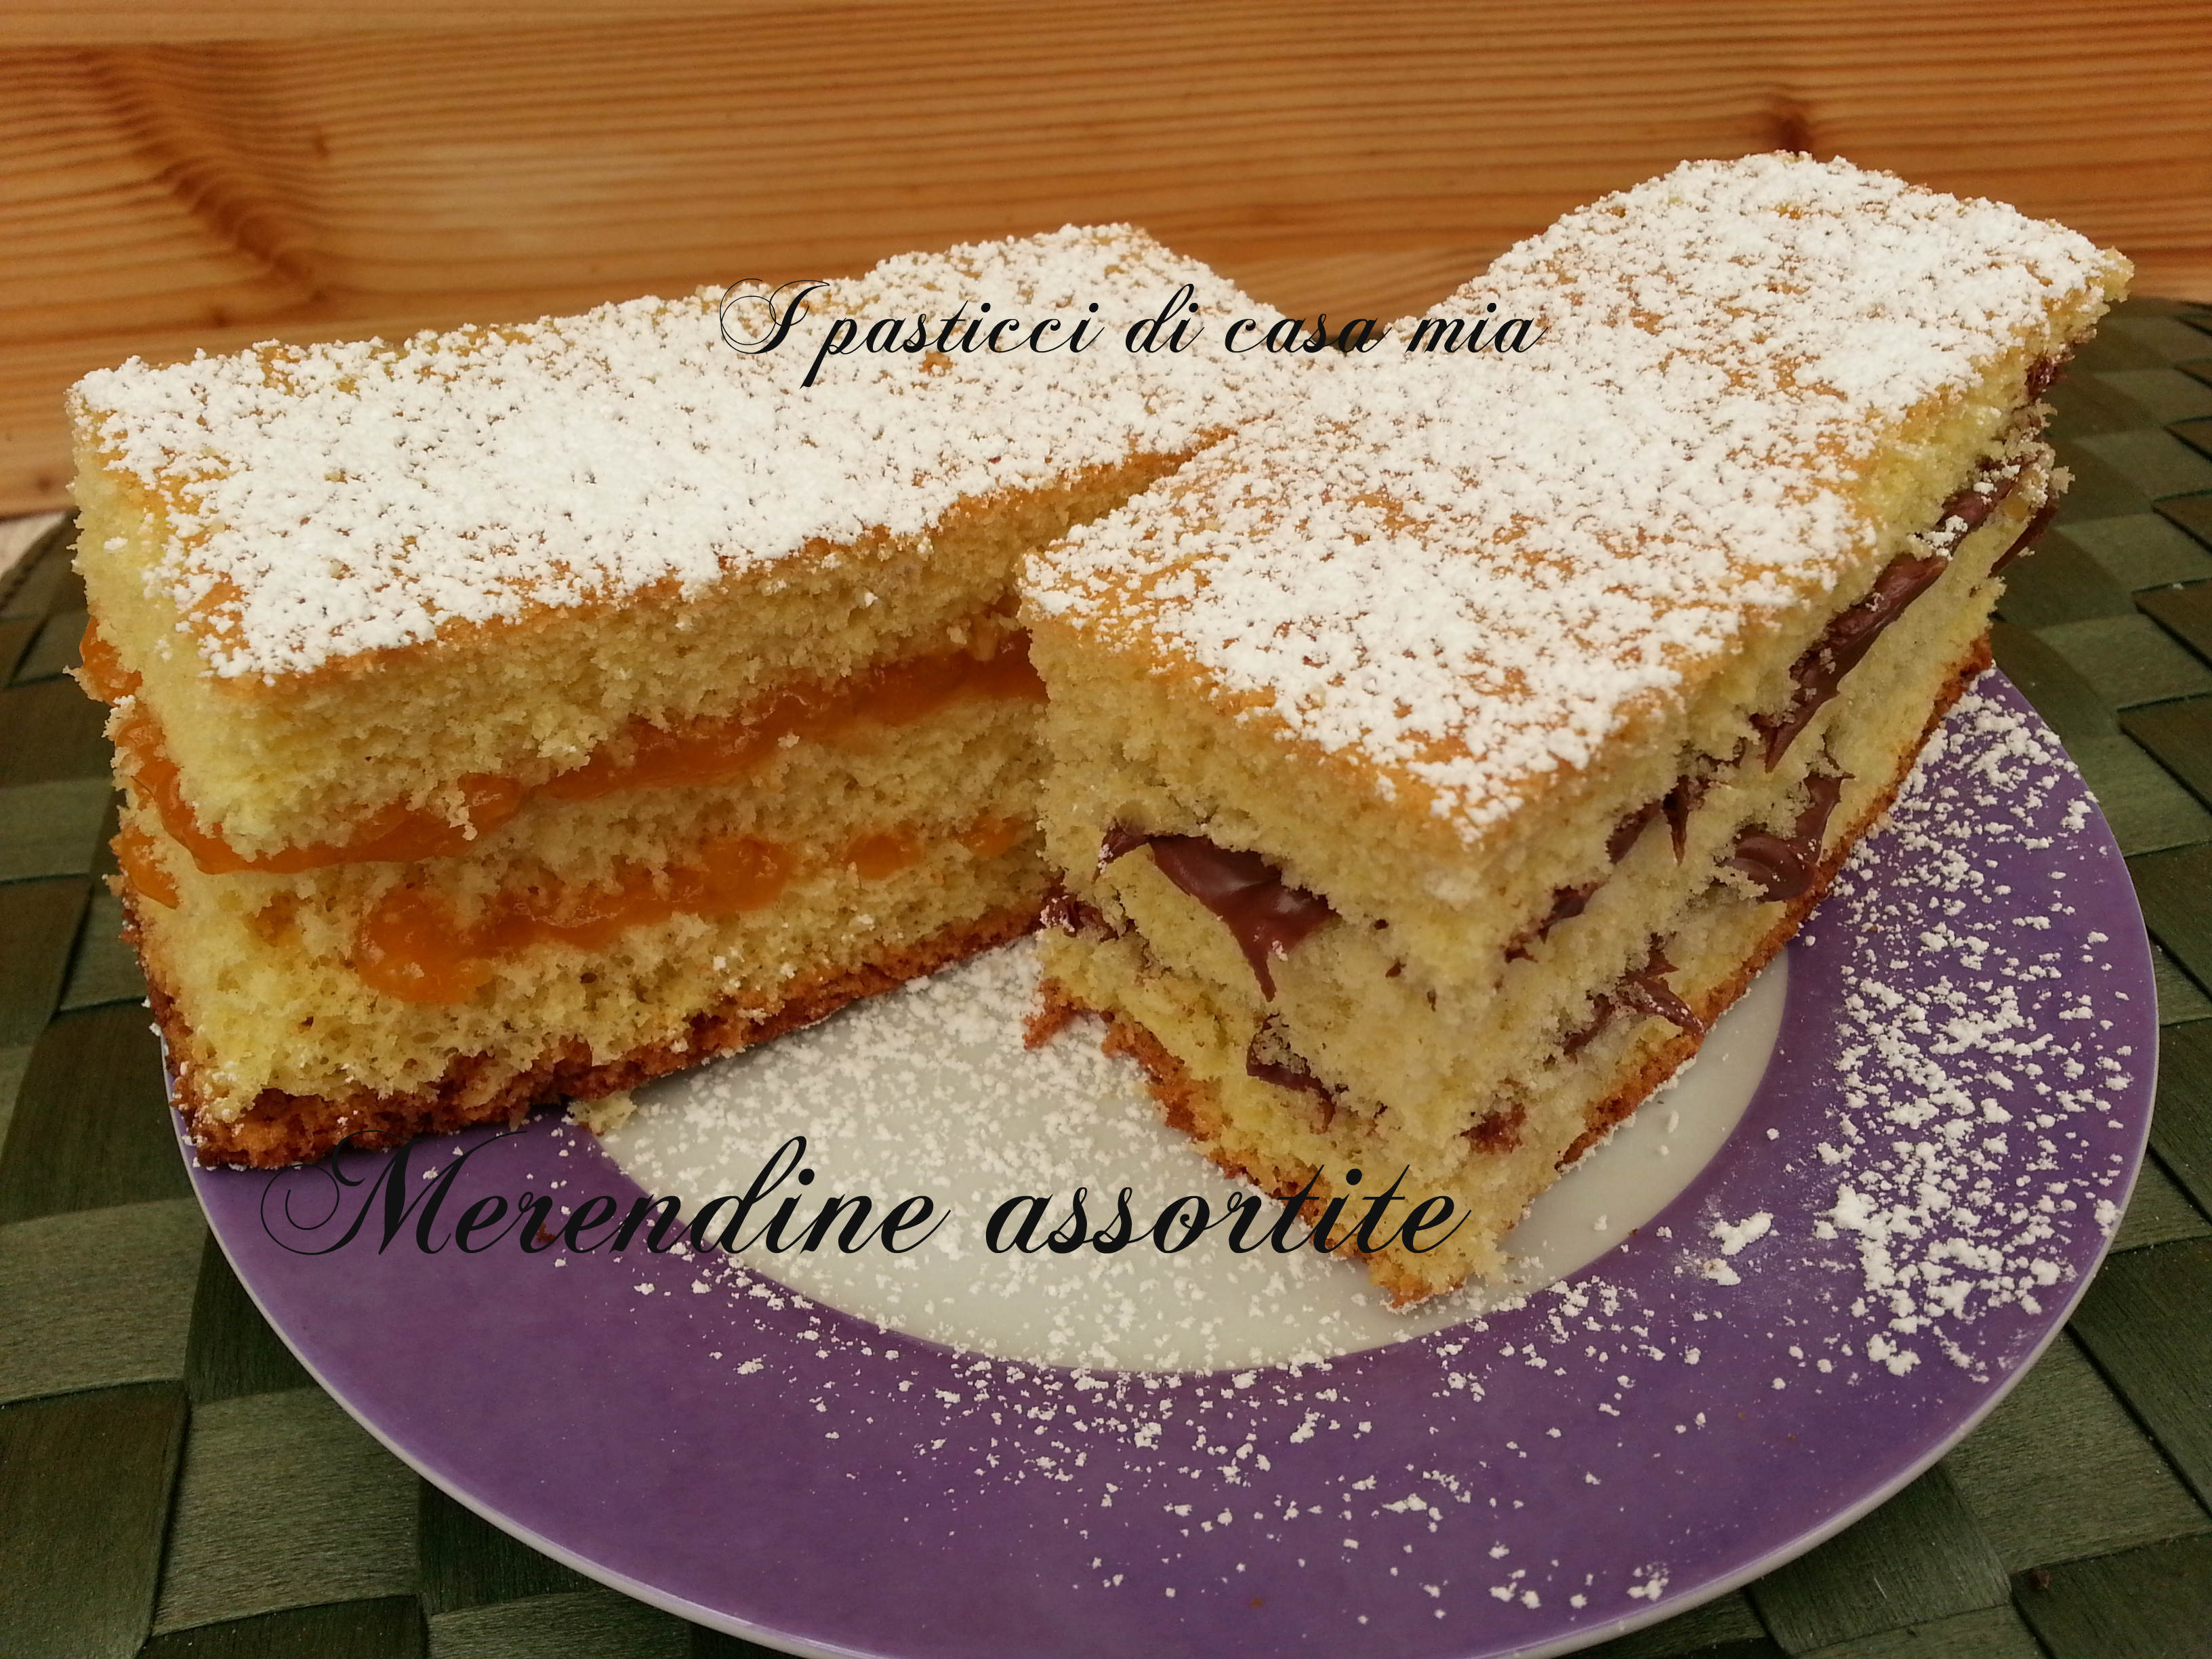 Merendine assortite